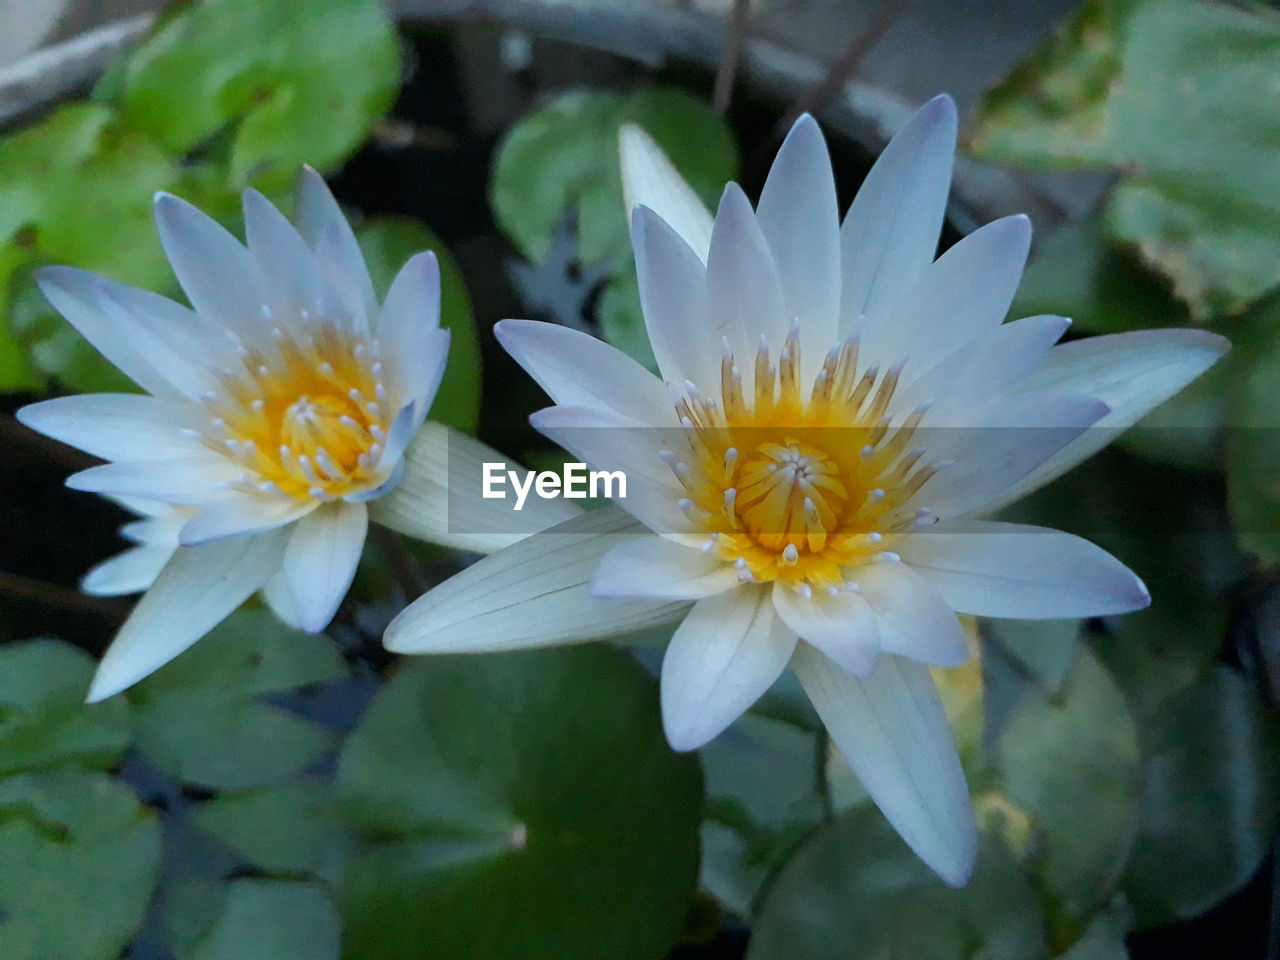 flower, flowering plant, fragility, petal, vulnerability, beauty in nature, freshness, plant, growth, flower head, inflorescence, close-up, nature, pollen, leaf, no people, white color, day, plant part, water lily, outdoors, purple, purity